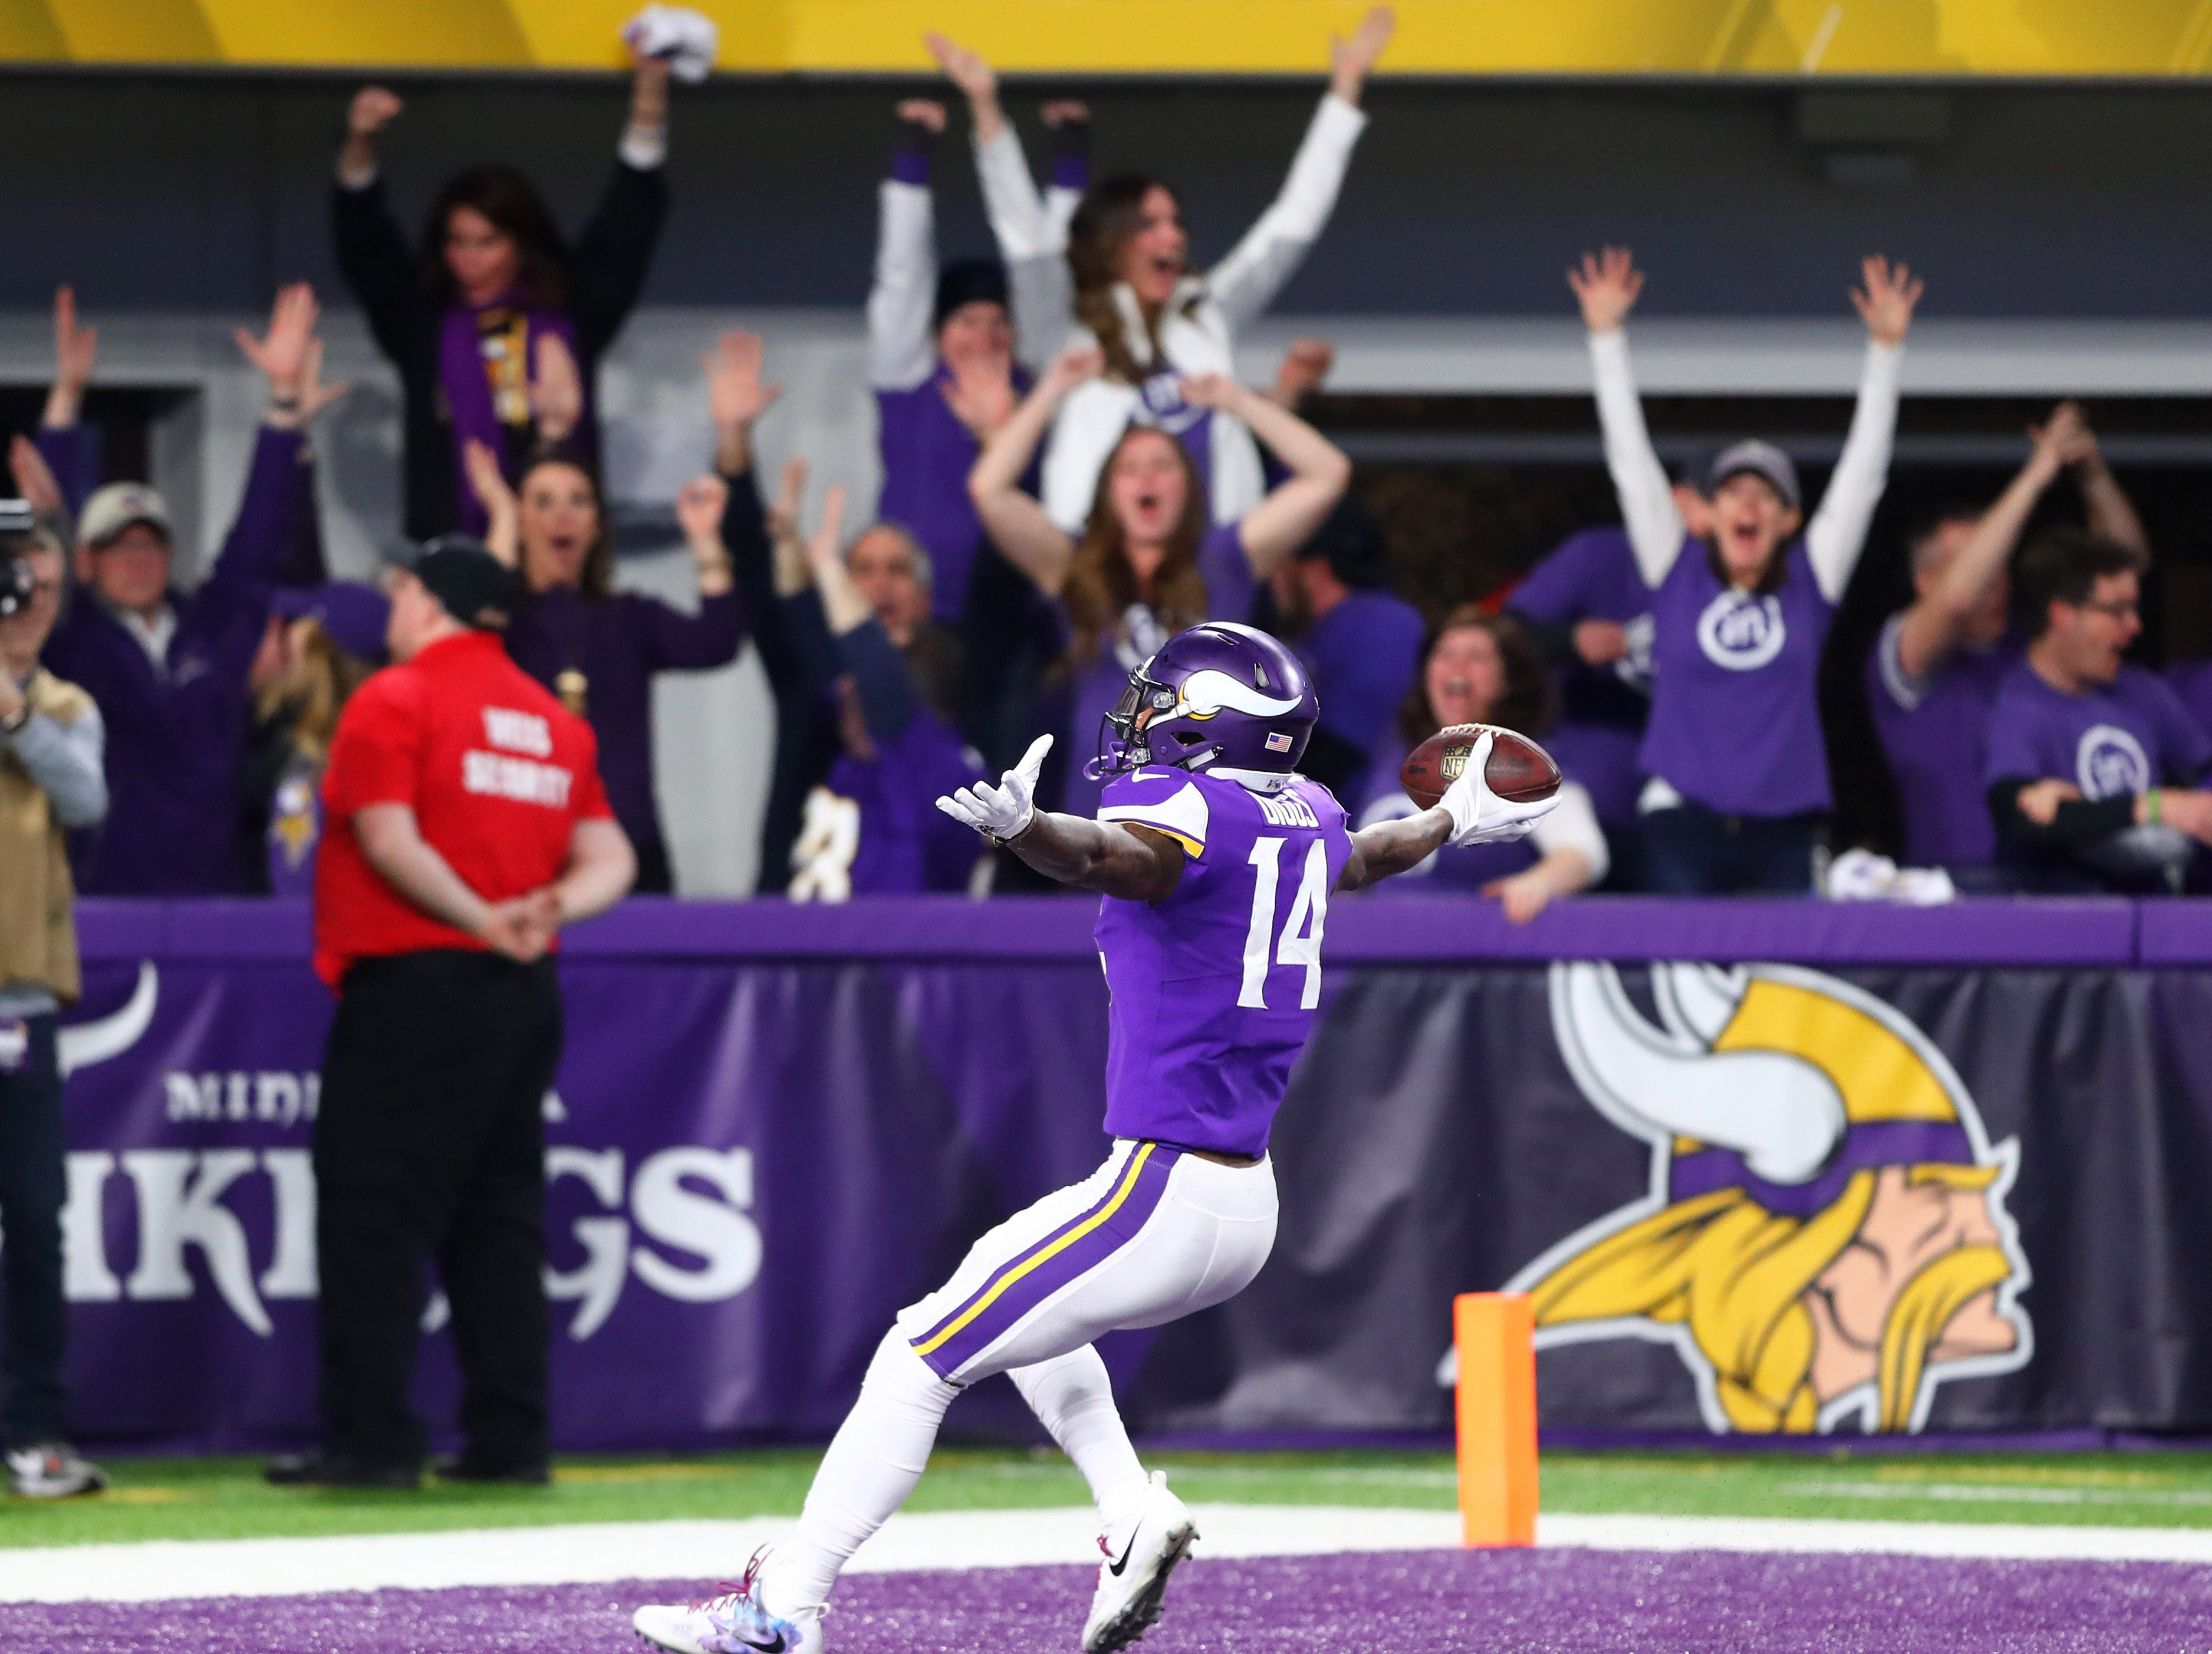 Jan. 14: Minnesota Vikings wide receiver Stefon Diggs celebrates his last-second miracle touchdown to beat the New Orleans Saints in the NFC's divisional round.